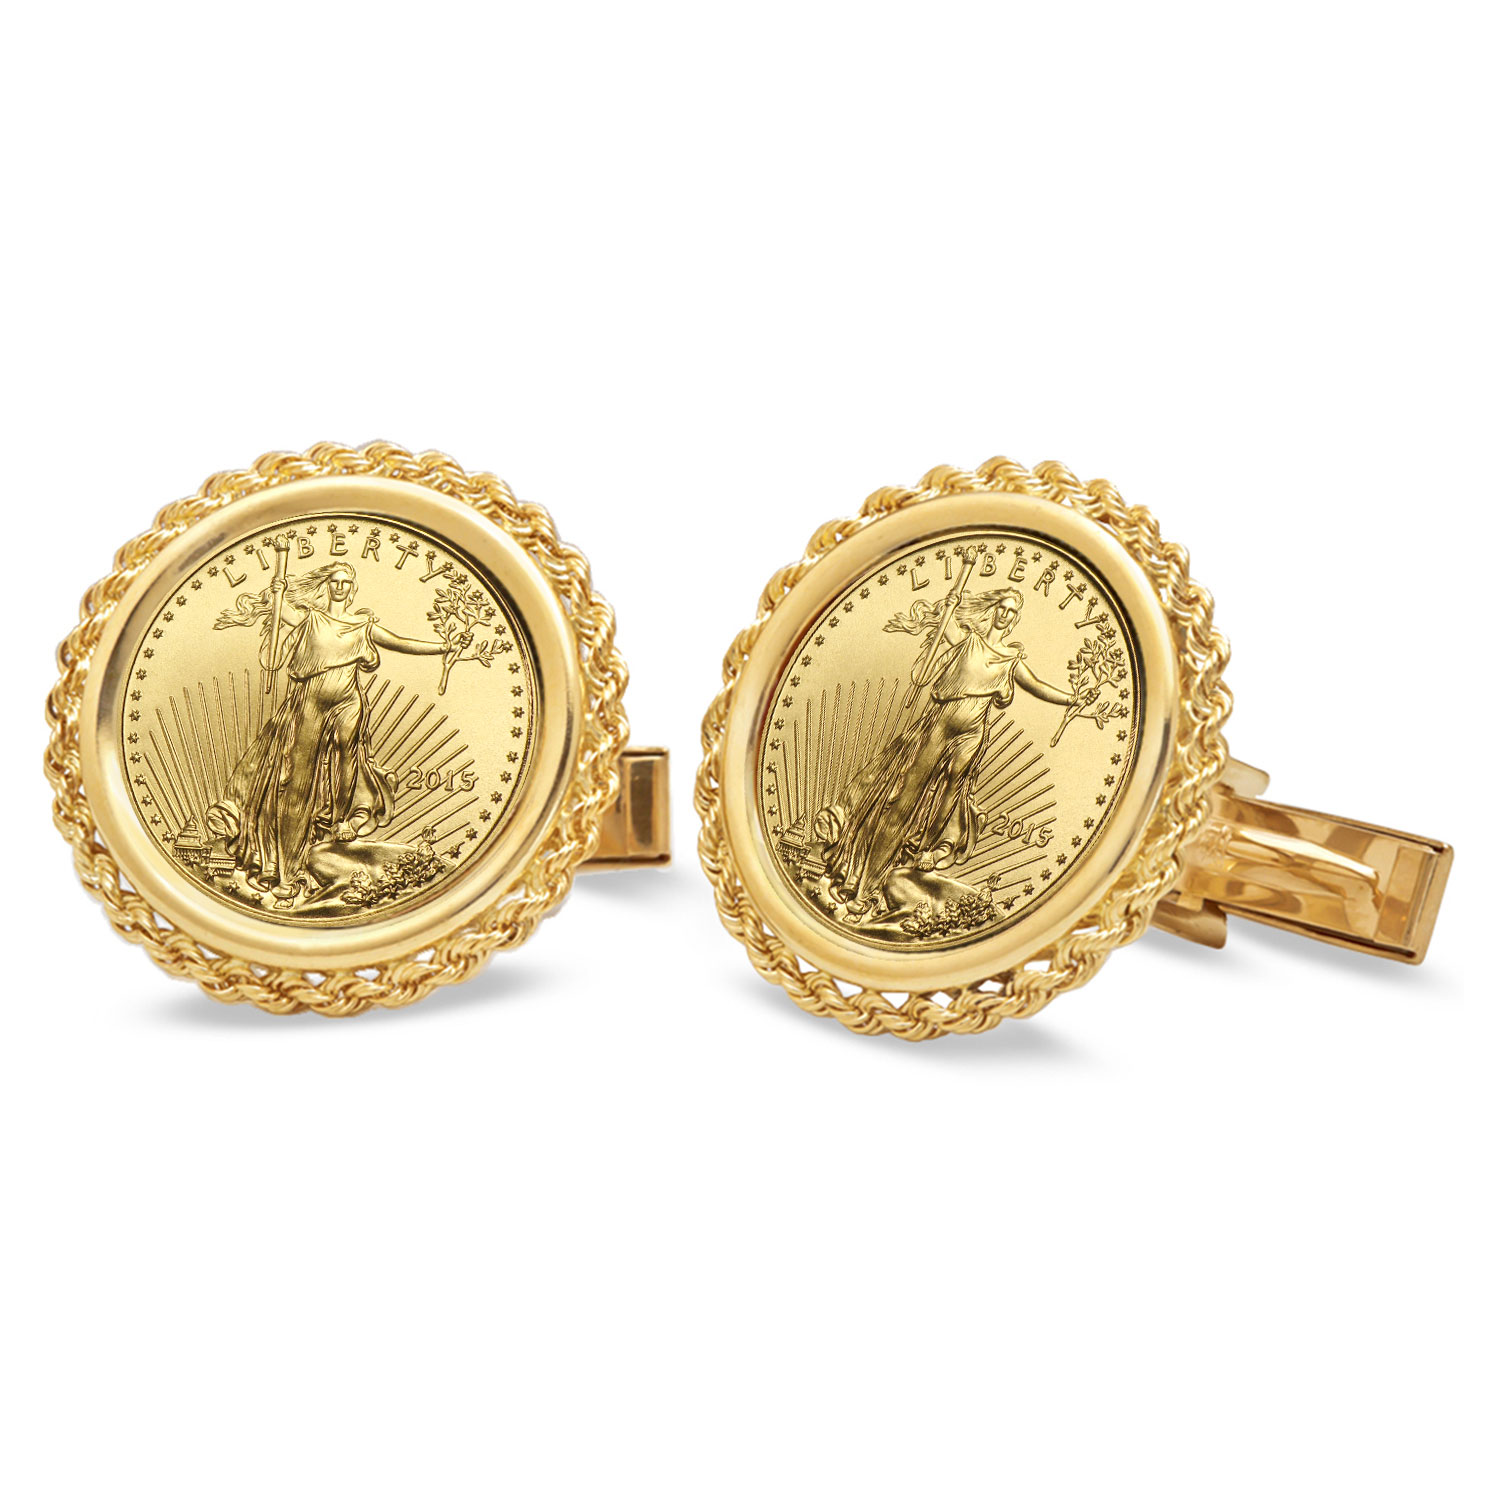 14k Gold Polished Rope Coin Cuff Links - 16.5 mm